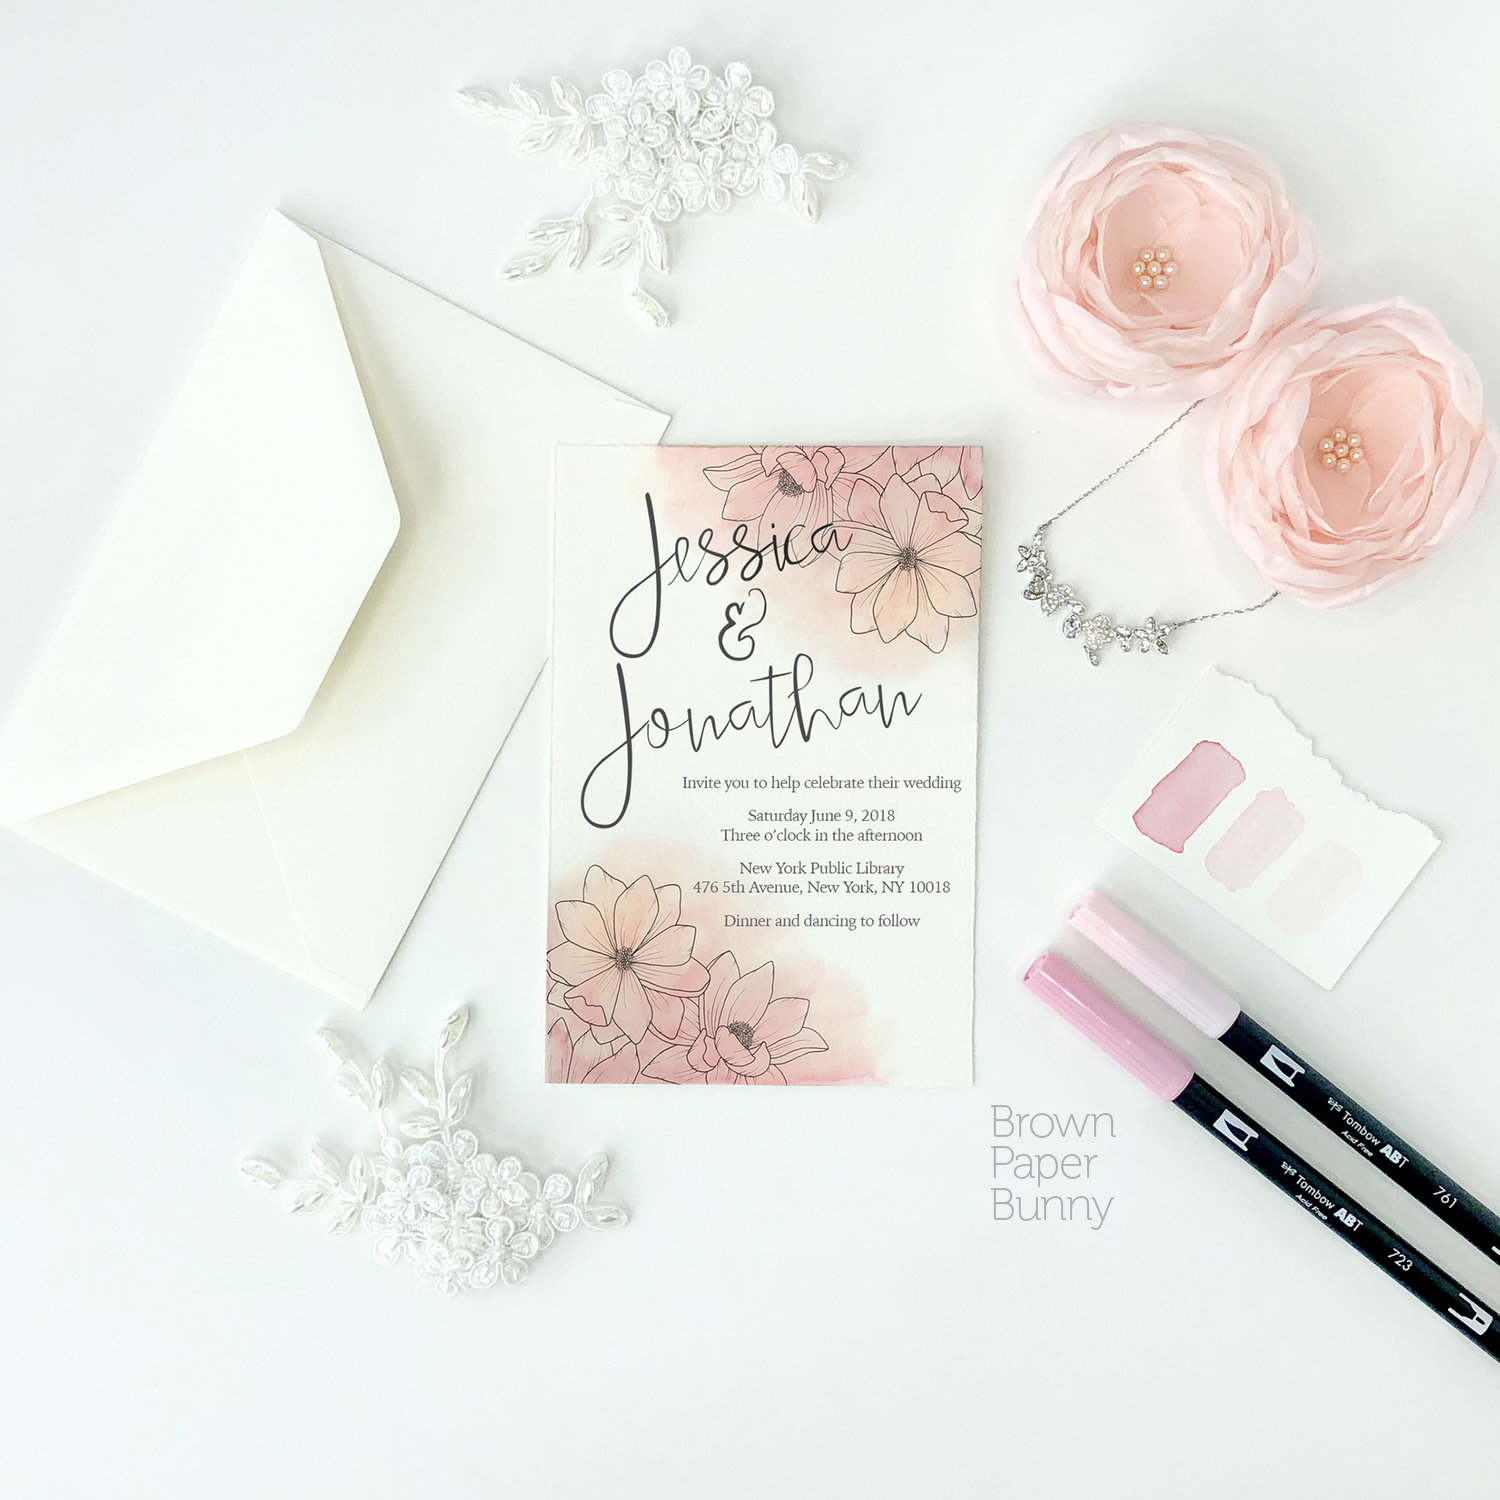 Wedding invitation created on behalf of Tombow